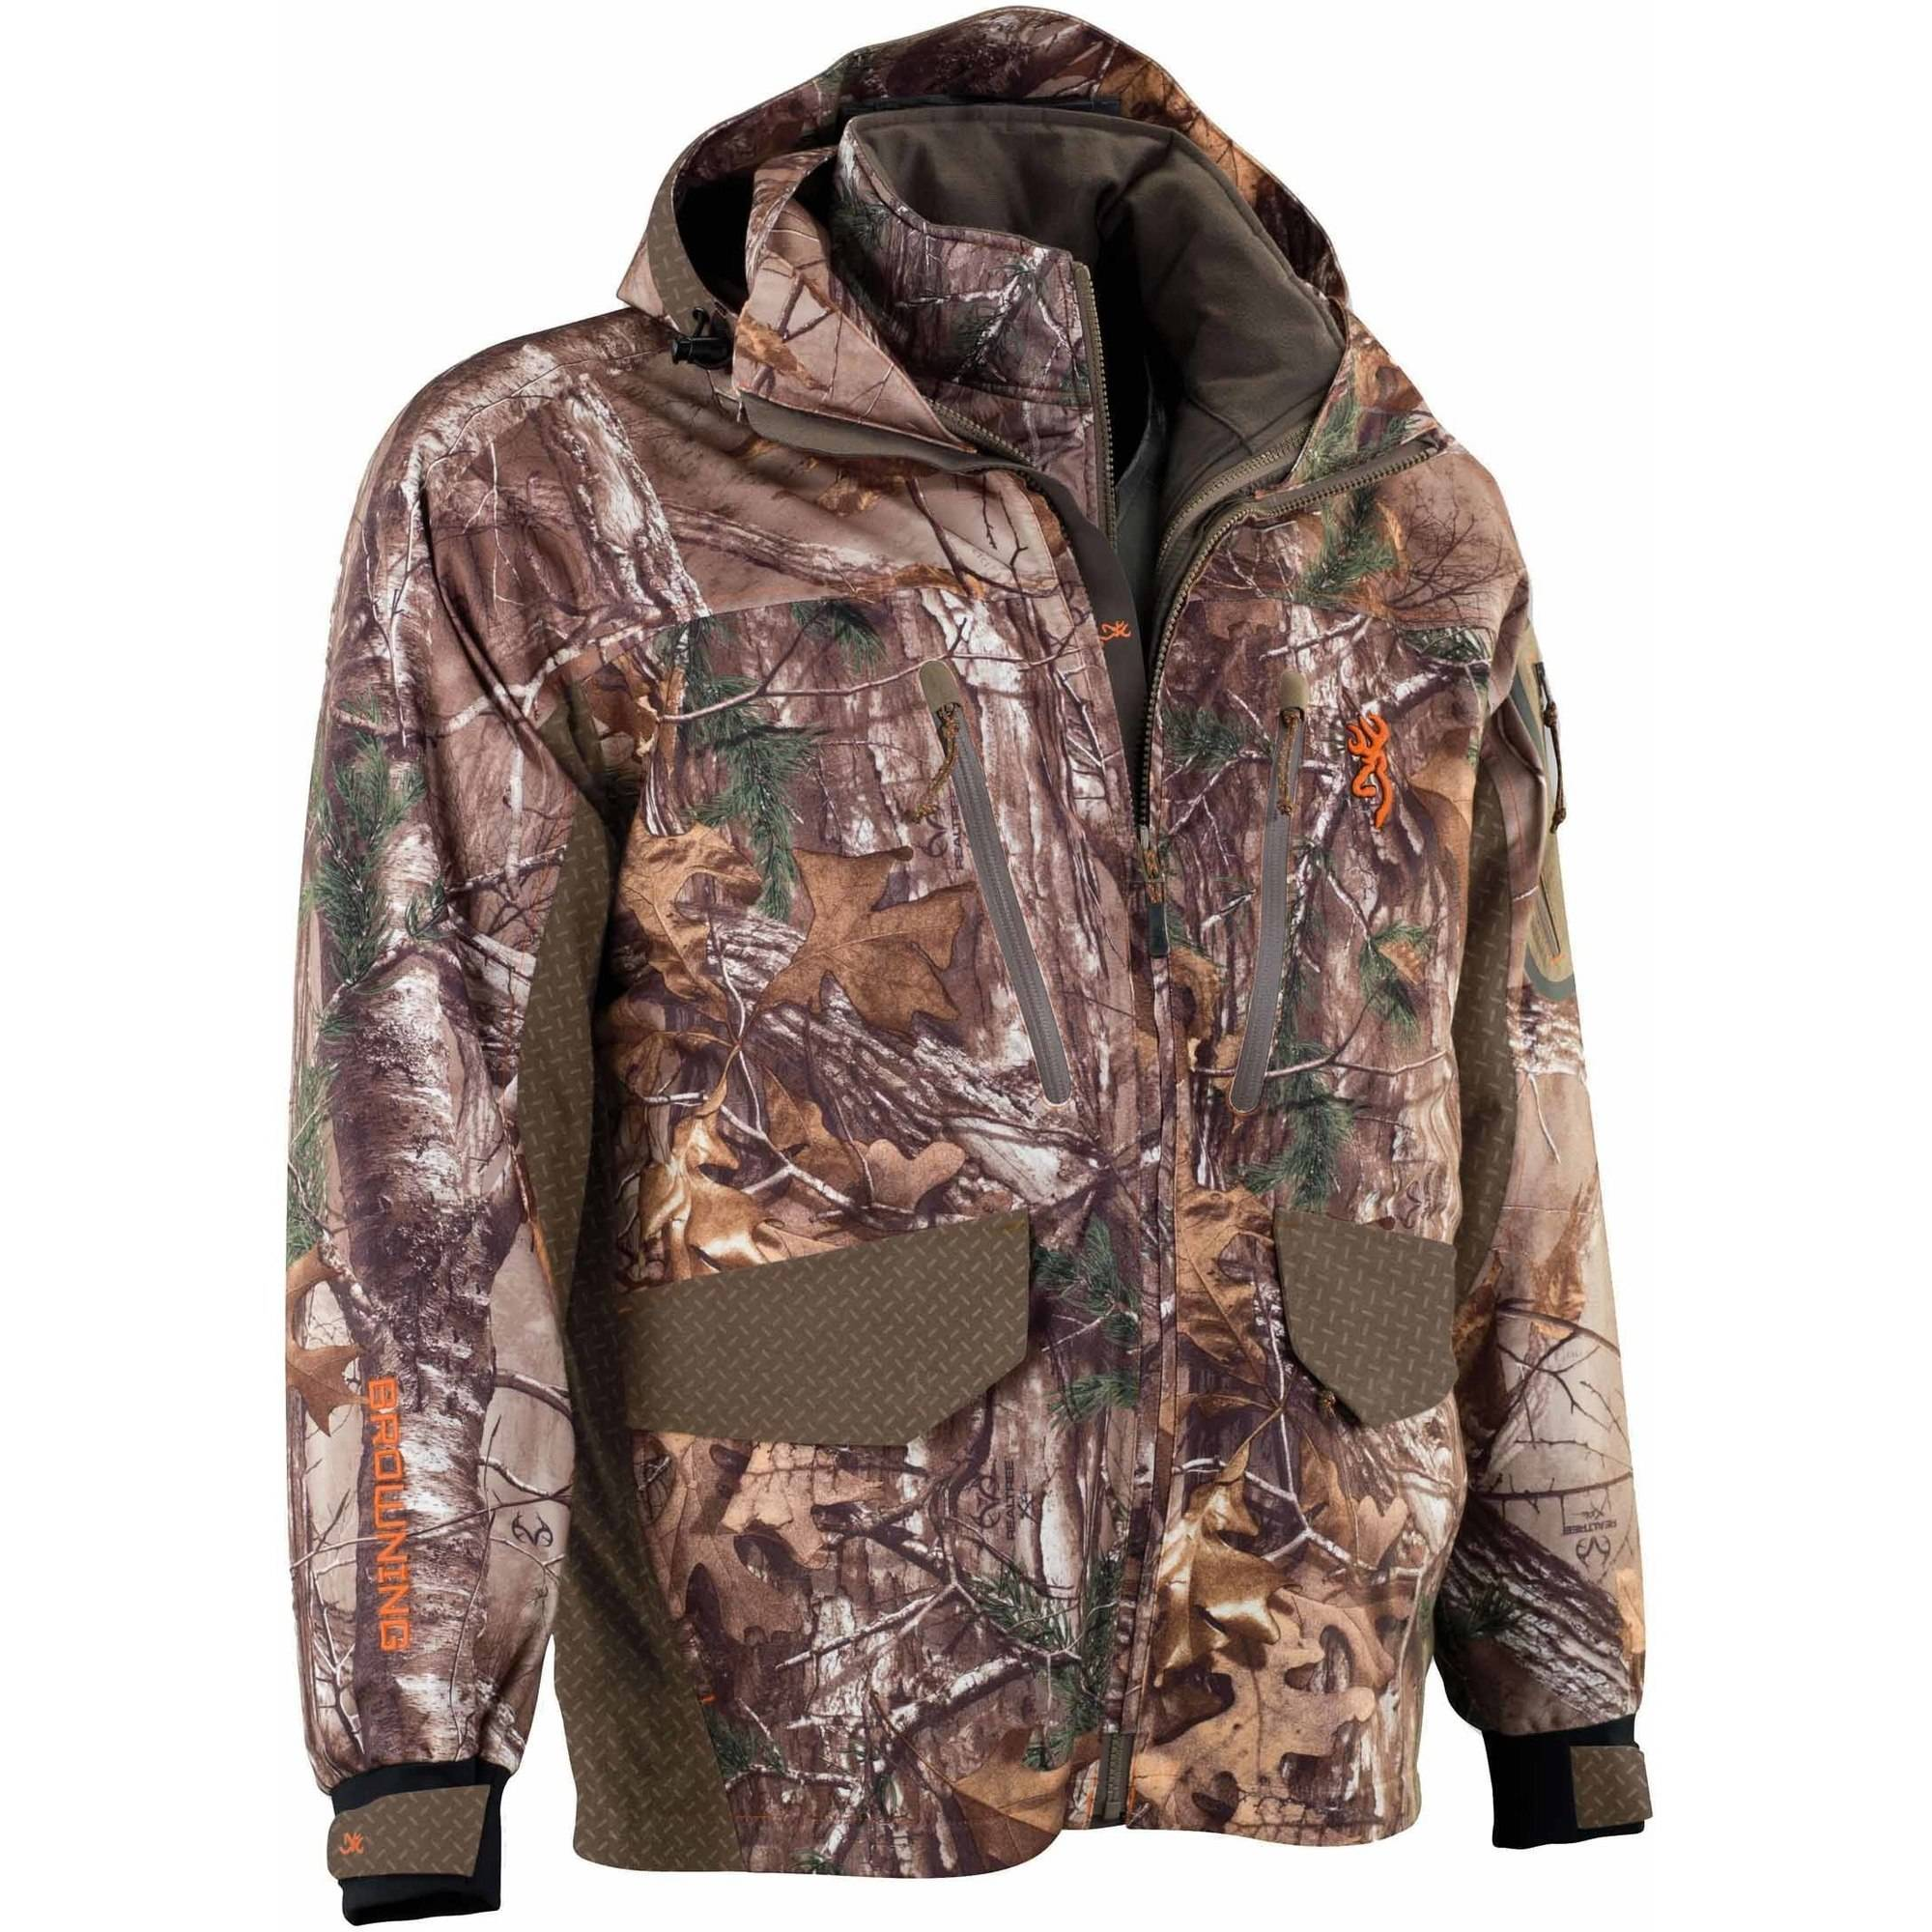 Browning Hell's Canyon 4-in-1 Primaloft Parka (3X)- RTX